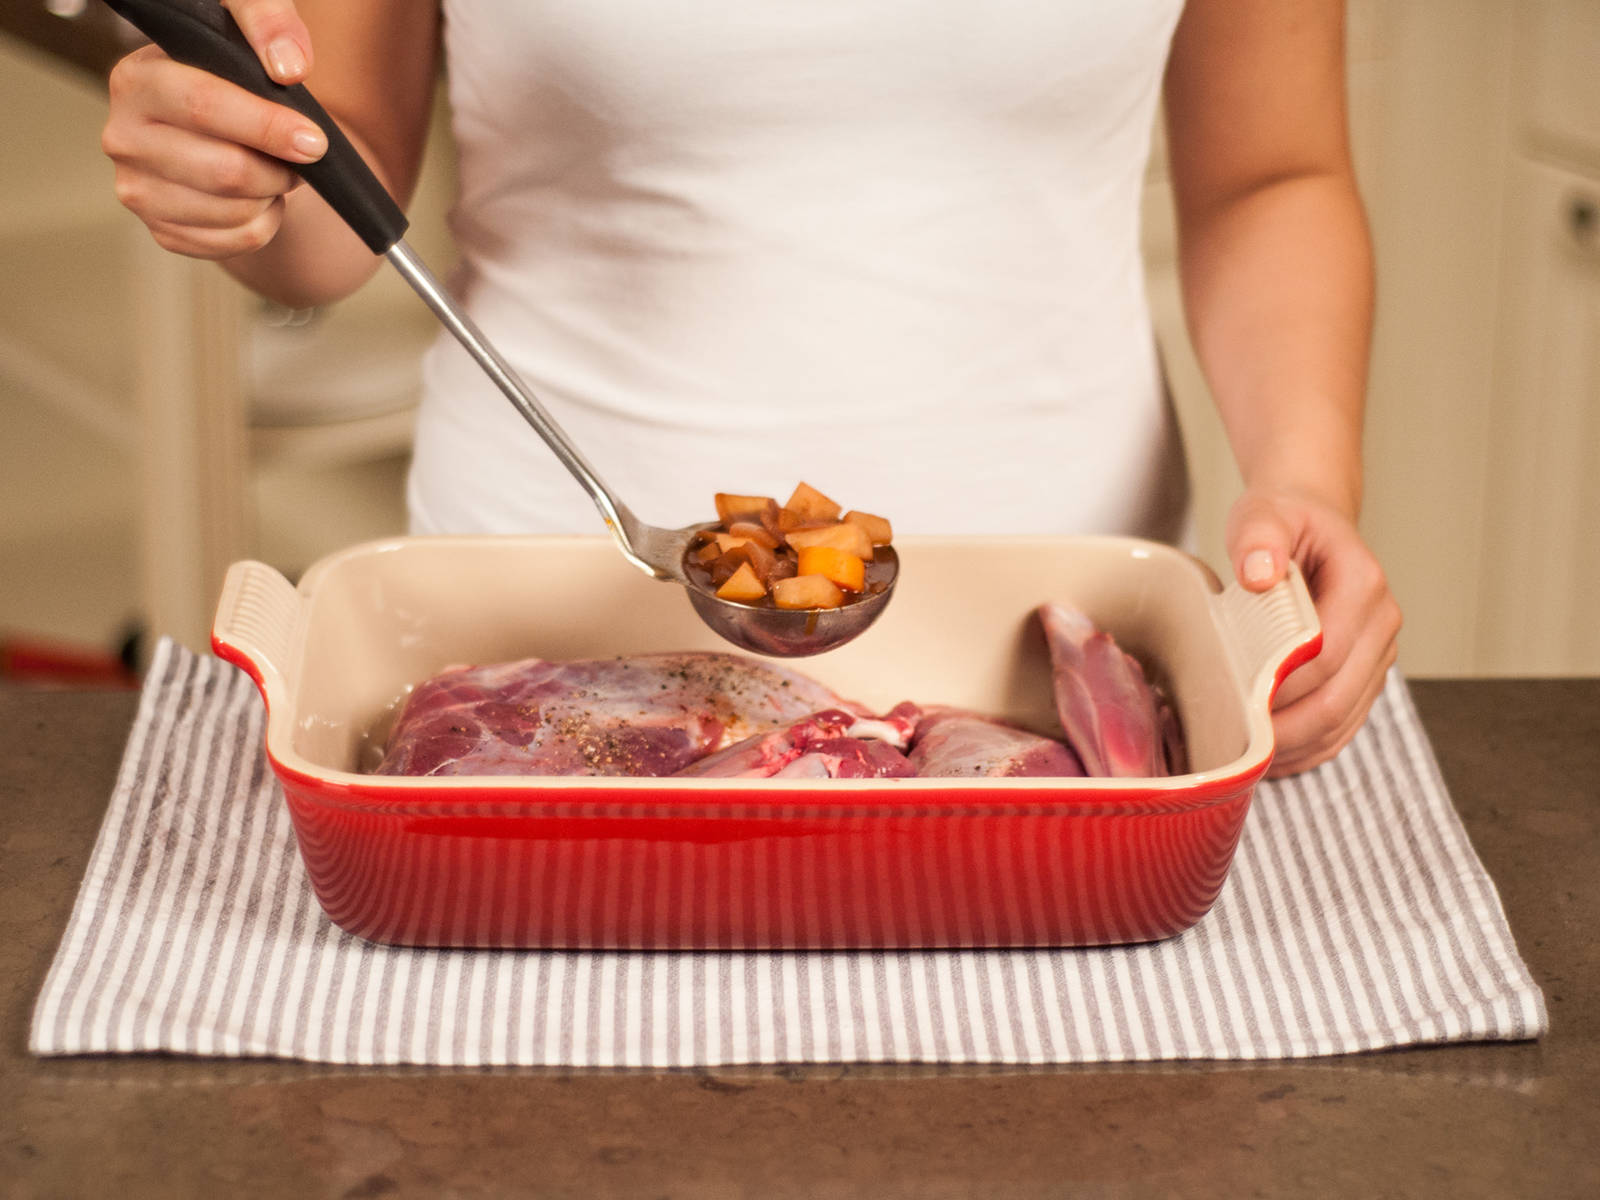 Place venison shoulder in a baking dish and ladle red wine and vegetable mixture on top. Add half of the venison stock and quince juice and bake in preheated oven at 170°C/350°F for approx. 50 min., removing from oven several times to add remaining venison stock and quince juice.